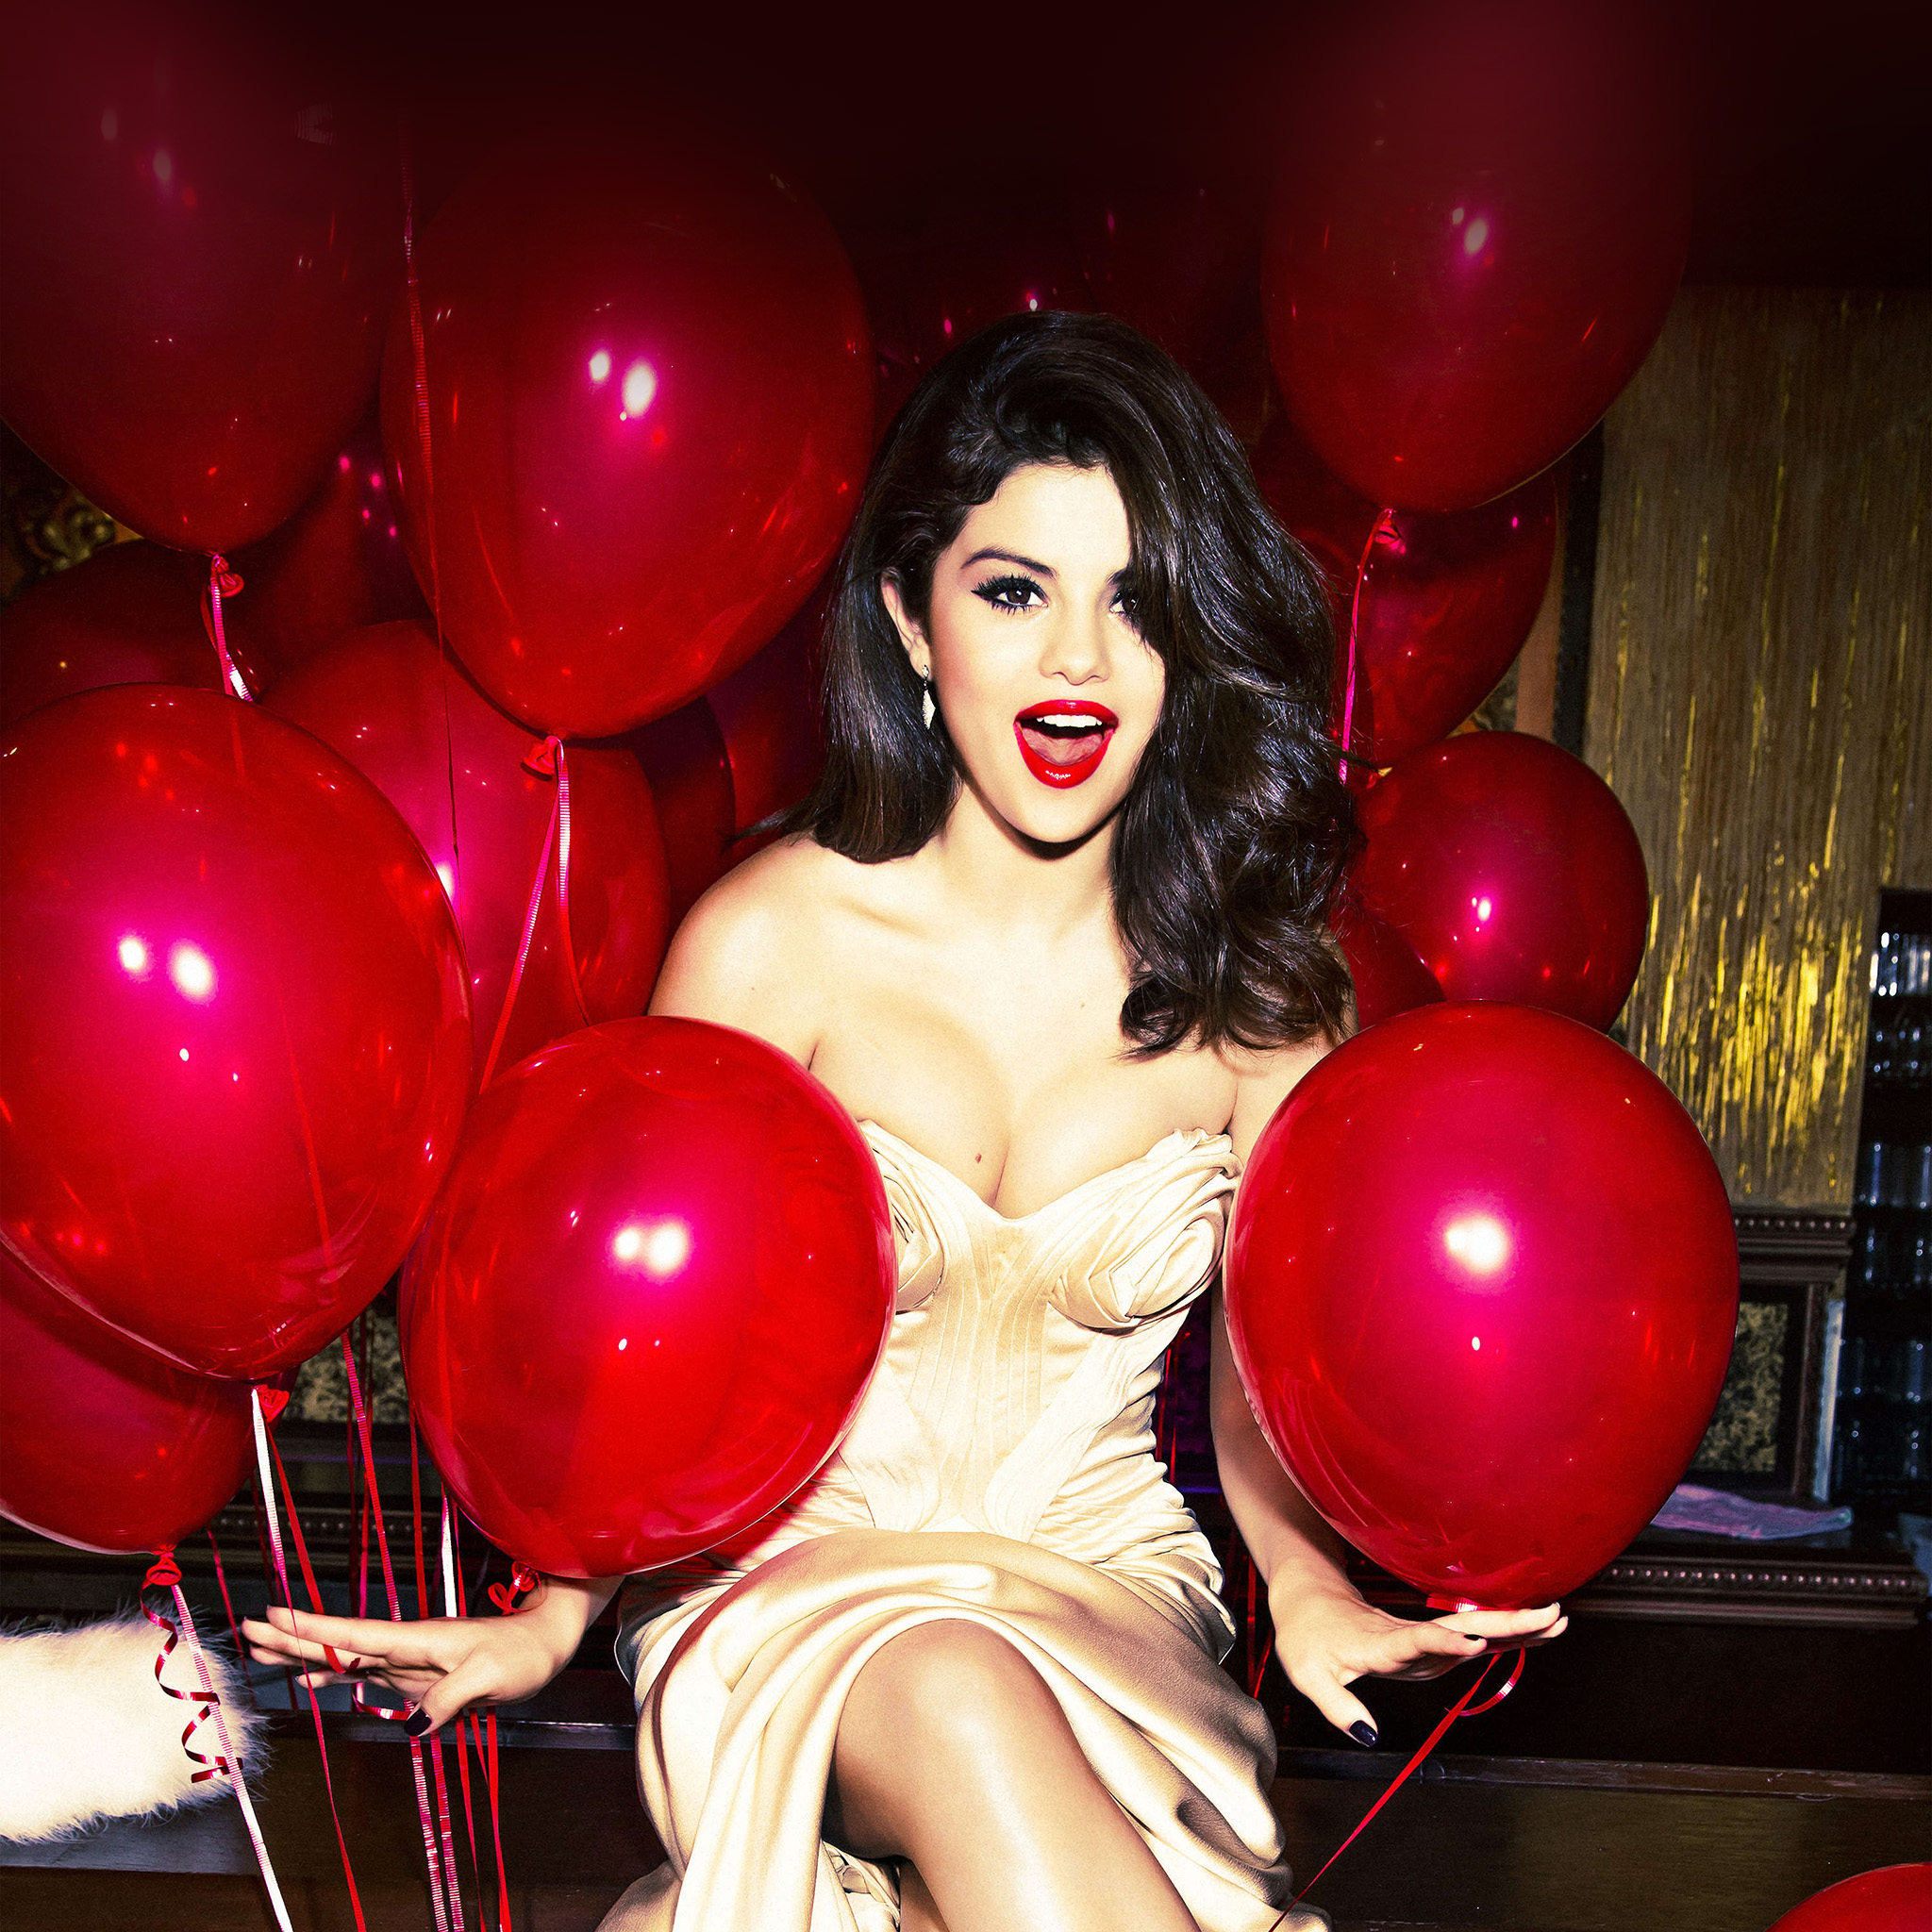 Anime Girl Iphone Wallpapers Hh76 Selena Gomez Red Dress Balloon Party Wallpaper